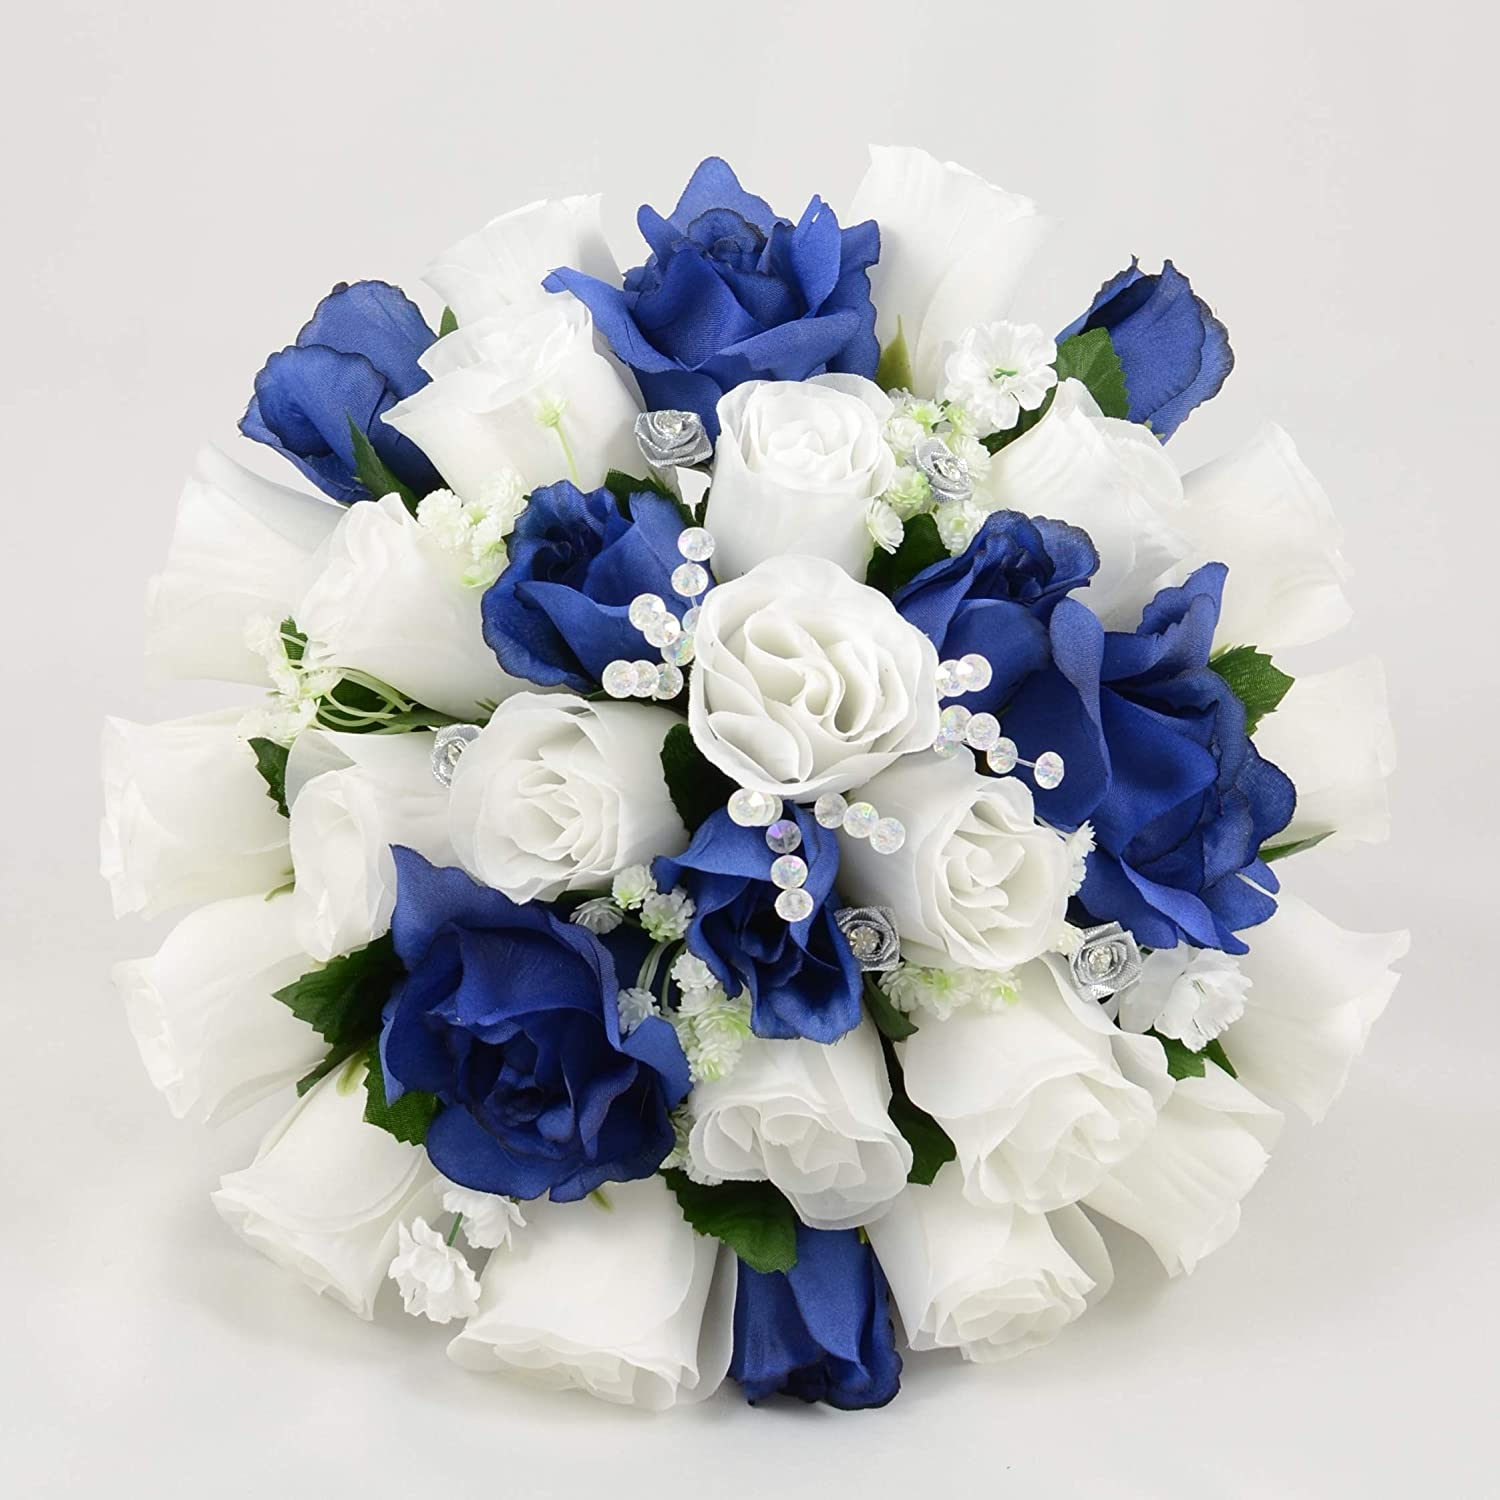 Silk Wedding Flowers Hand Made By Petals Polly Brides Posy White Navy Blue Amazon Co Uk Garden Outdoors